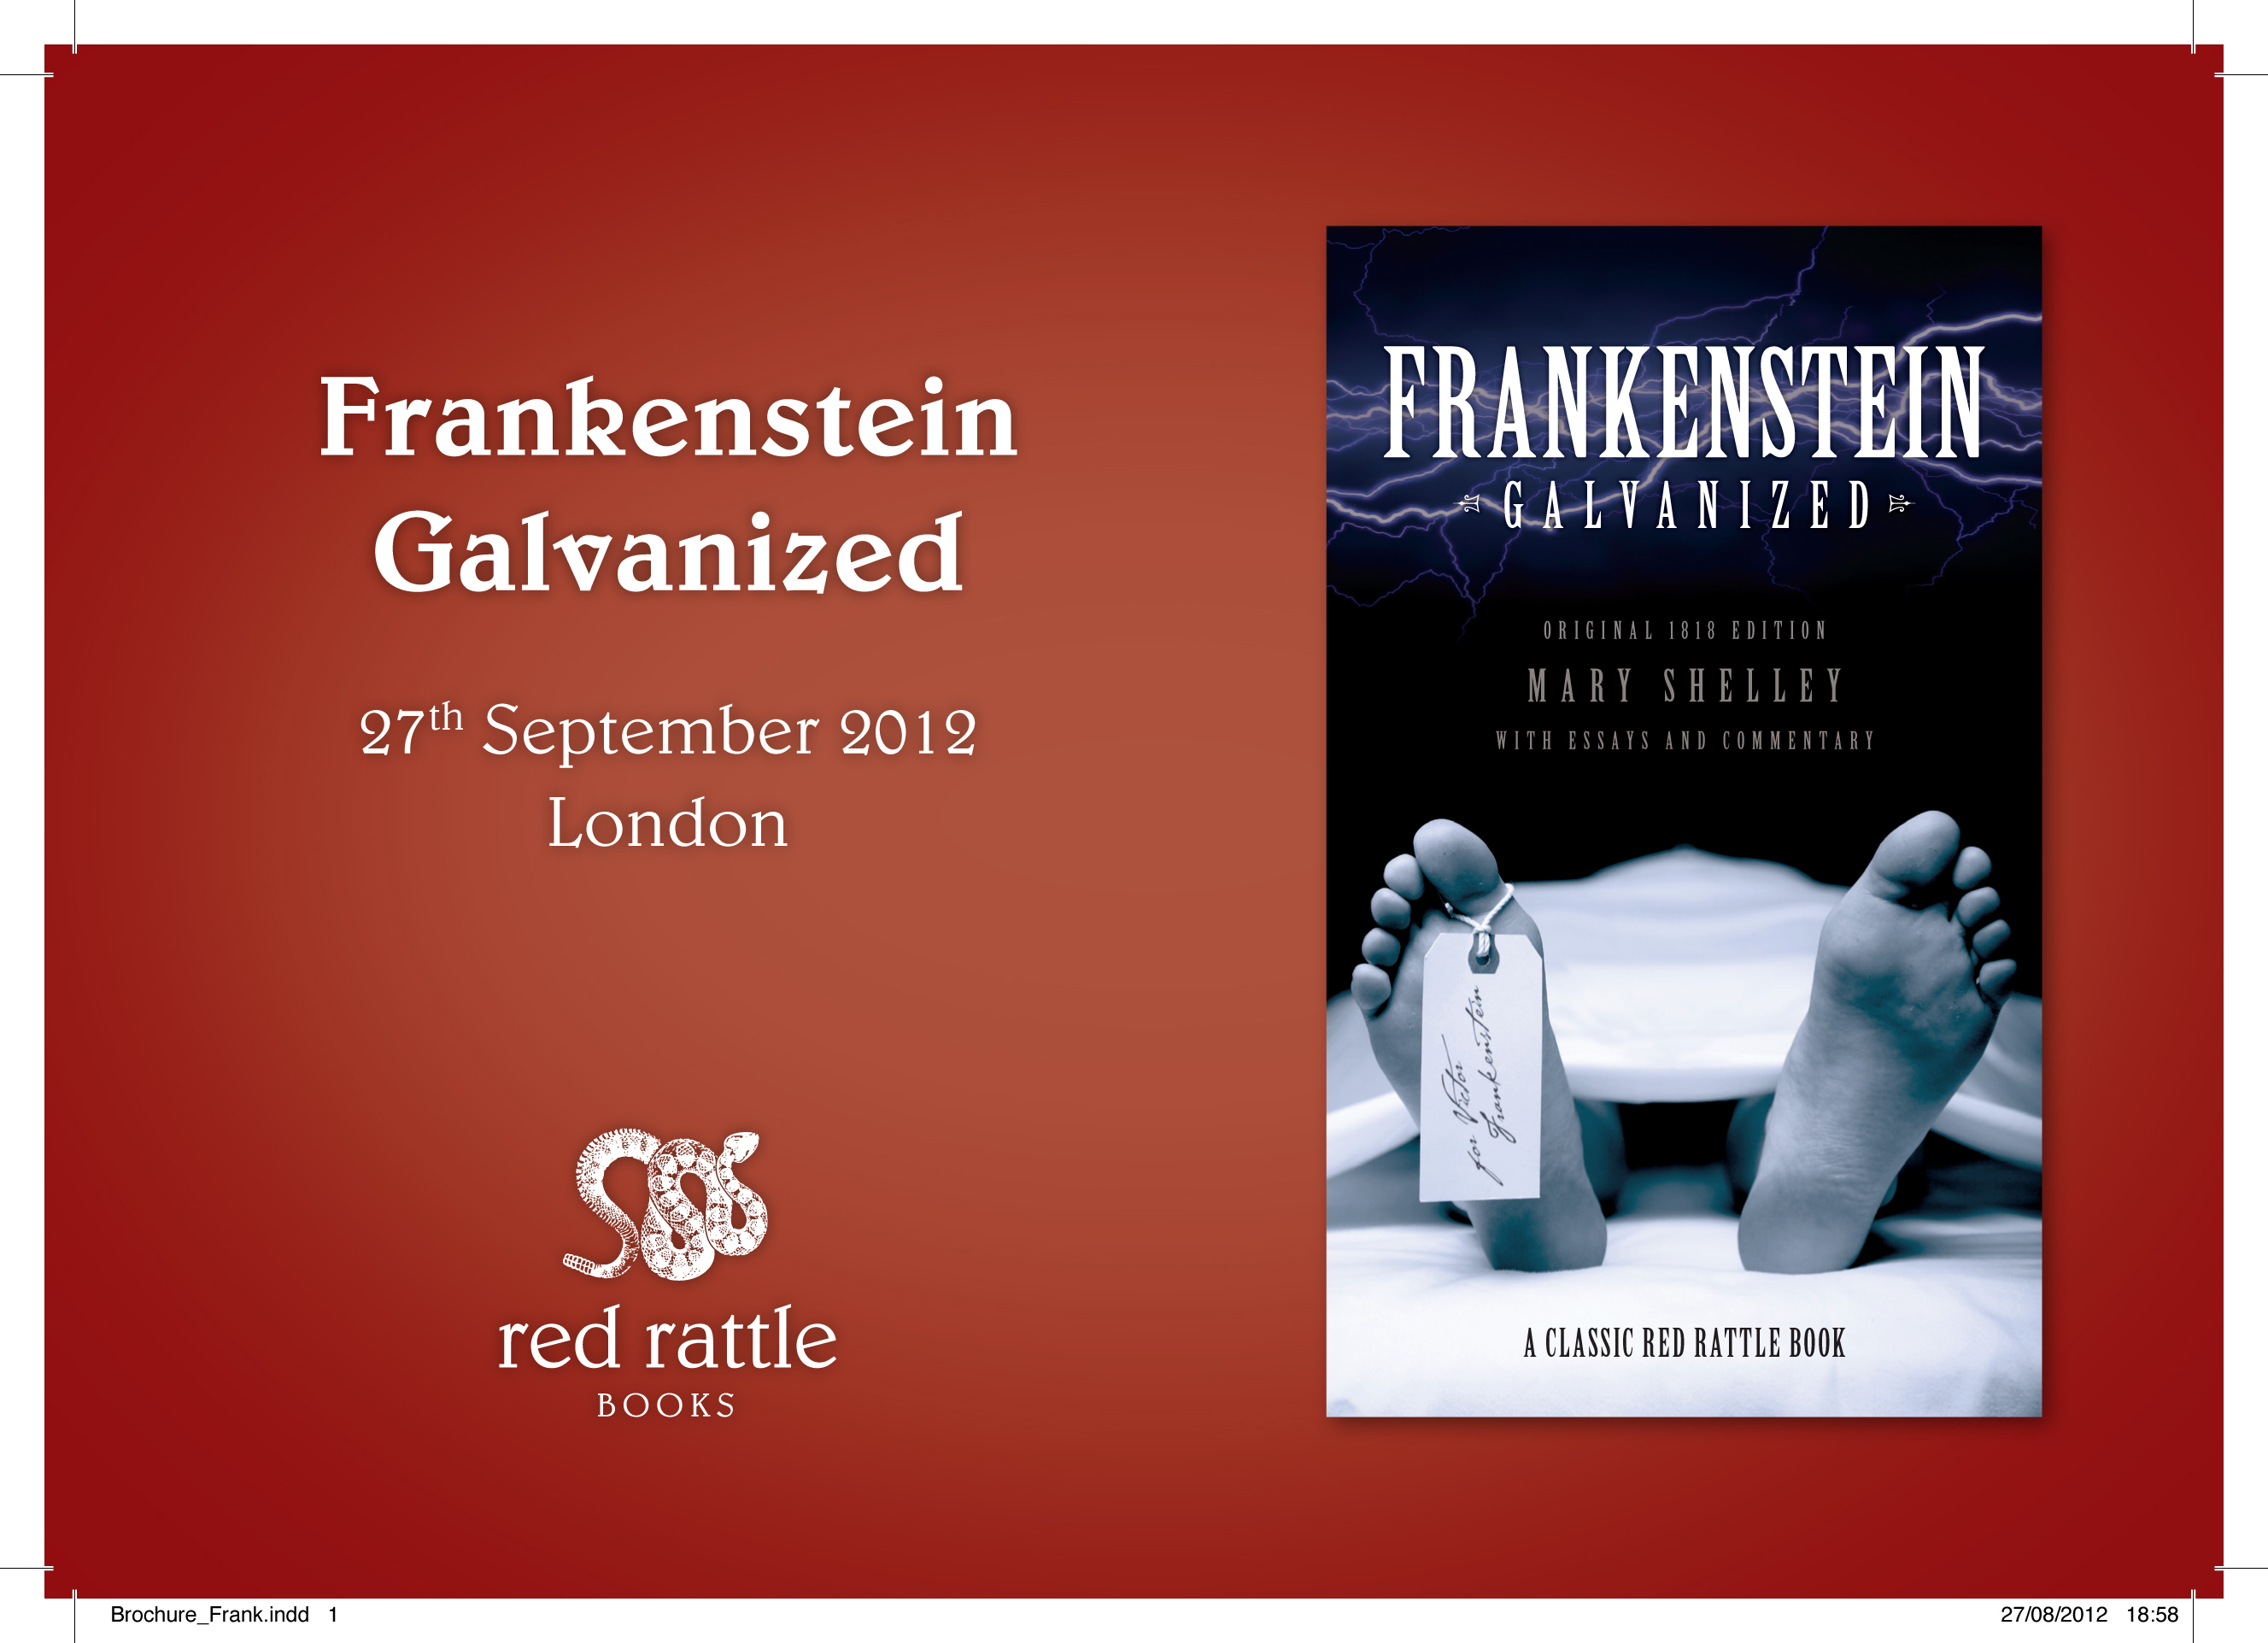 Buy Frankenstein Galvanized from Amazon.com